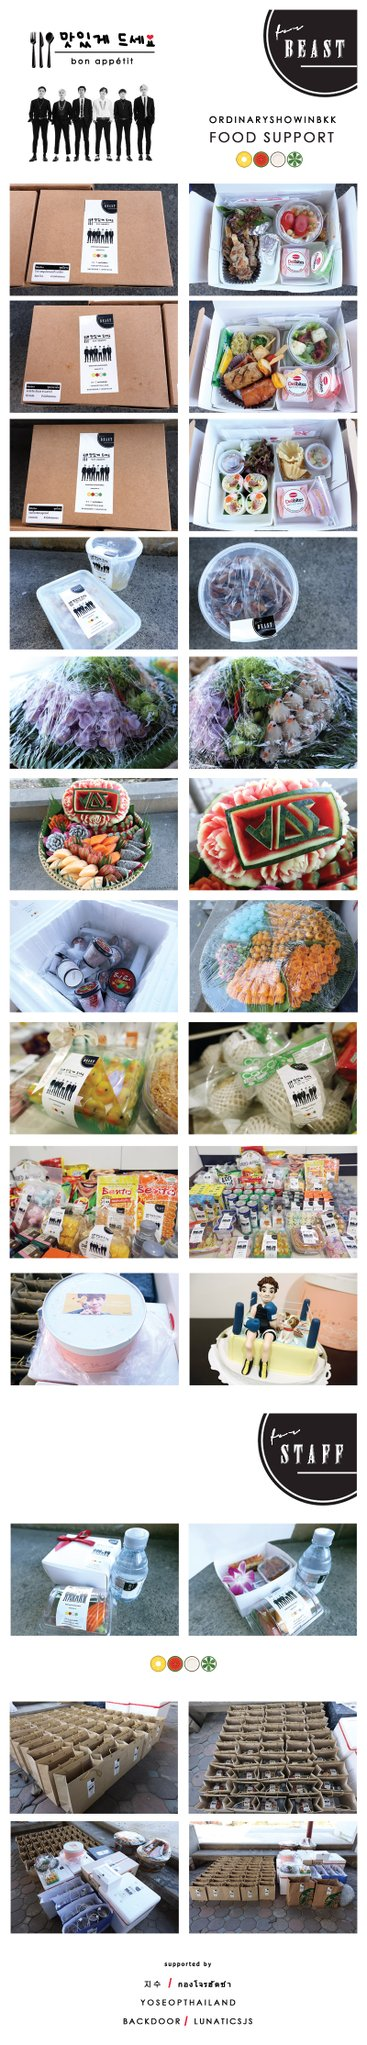 "กองโจรฮัดช่า on Twitter: ""151227 #ORDINARYSHOWINBKK FOOD SUPPORT https://t.co/ZKgNmvbZ9r https://t.co/az99LGkCNt"""